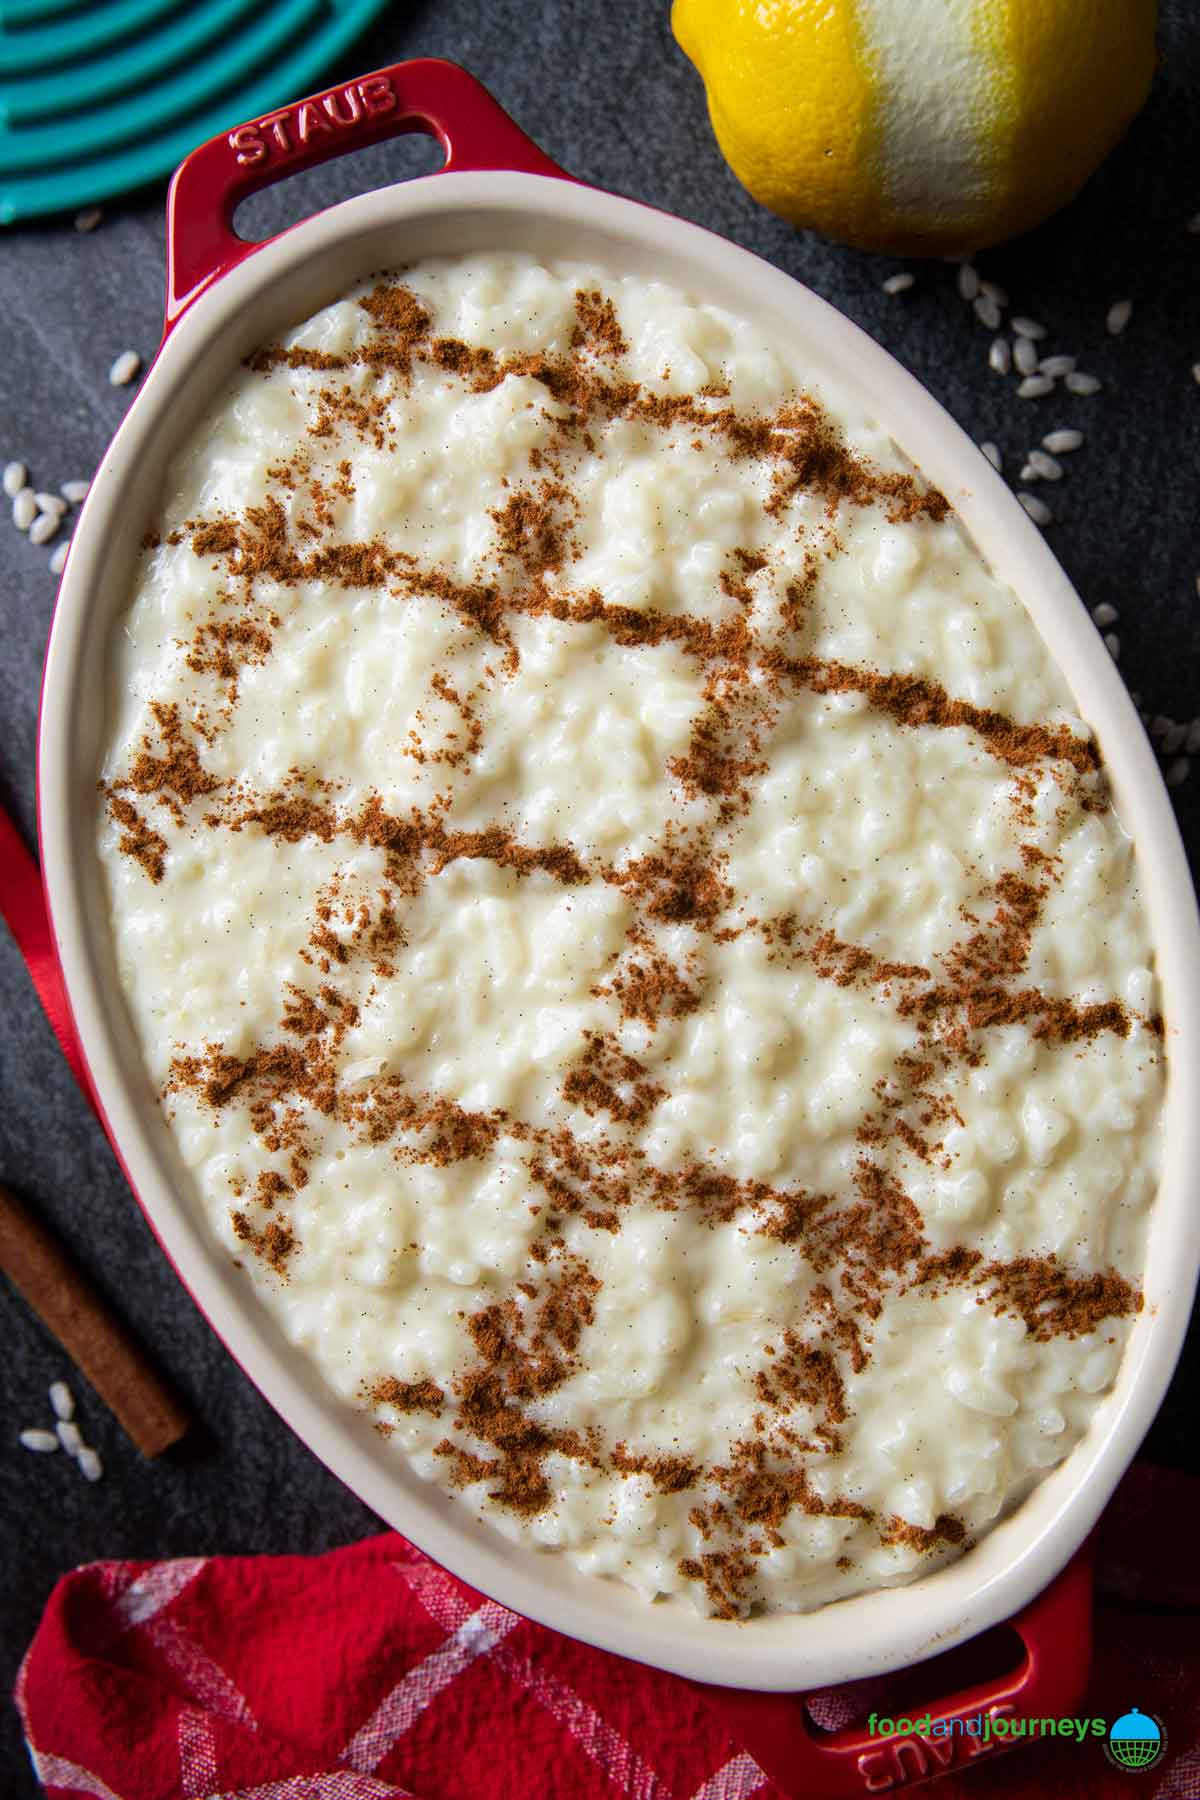 An overhead shot of creamy rice pudding, decorated with cinnamon powder, ready for serving.